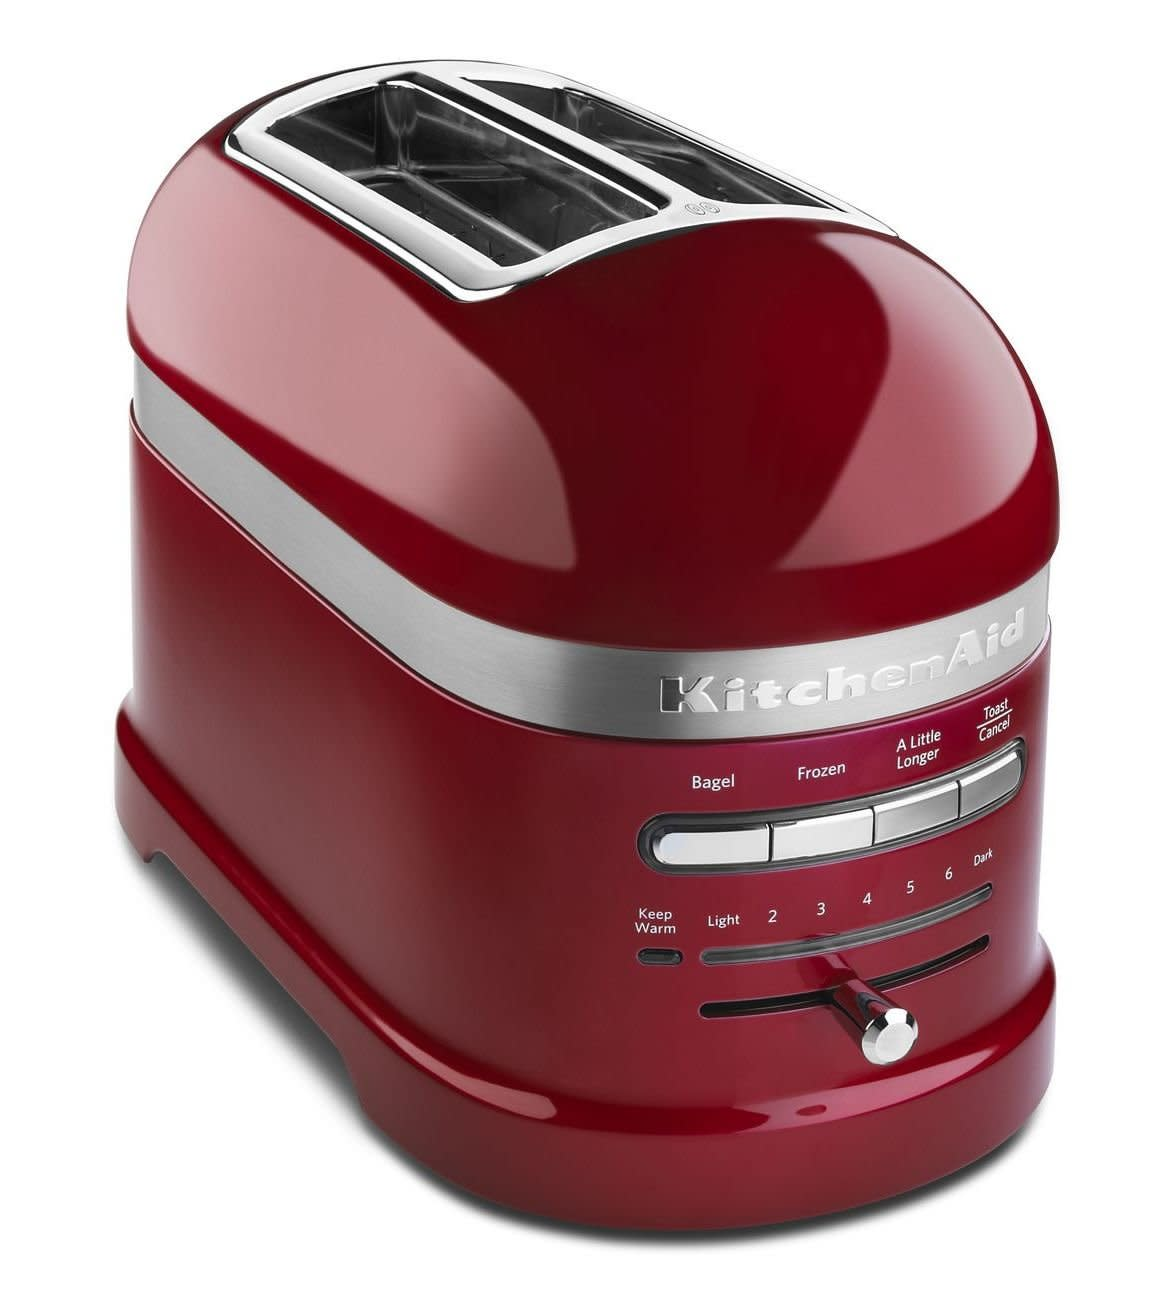 10 Design-Friendly Toasters You'll Be Happy to Have on Your Counter: gallery image 2